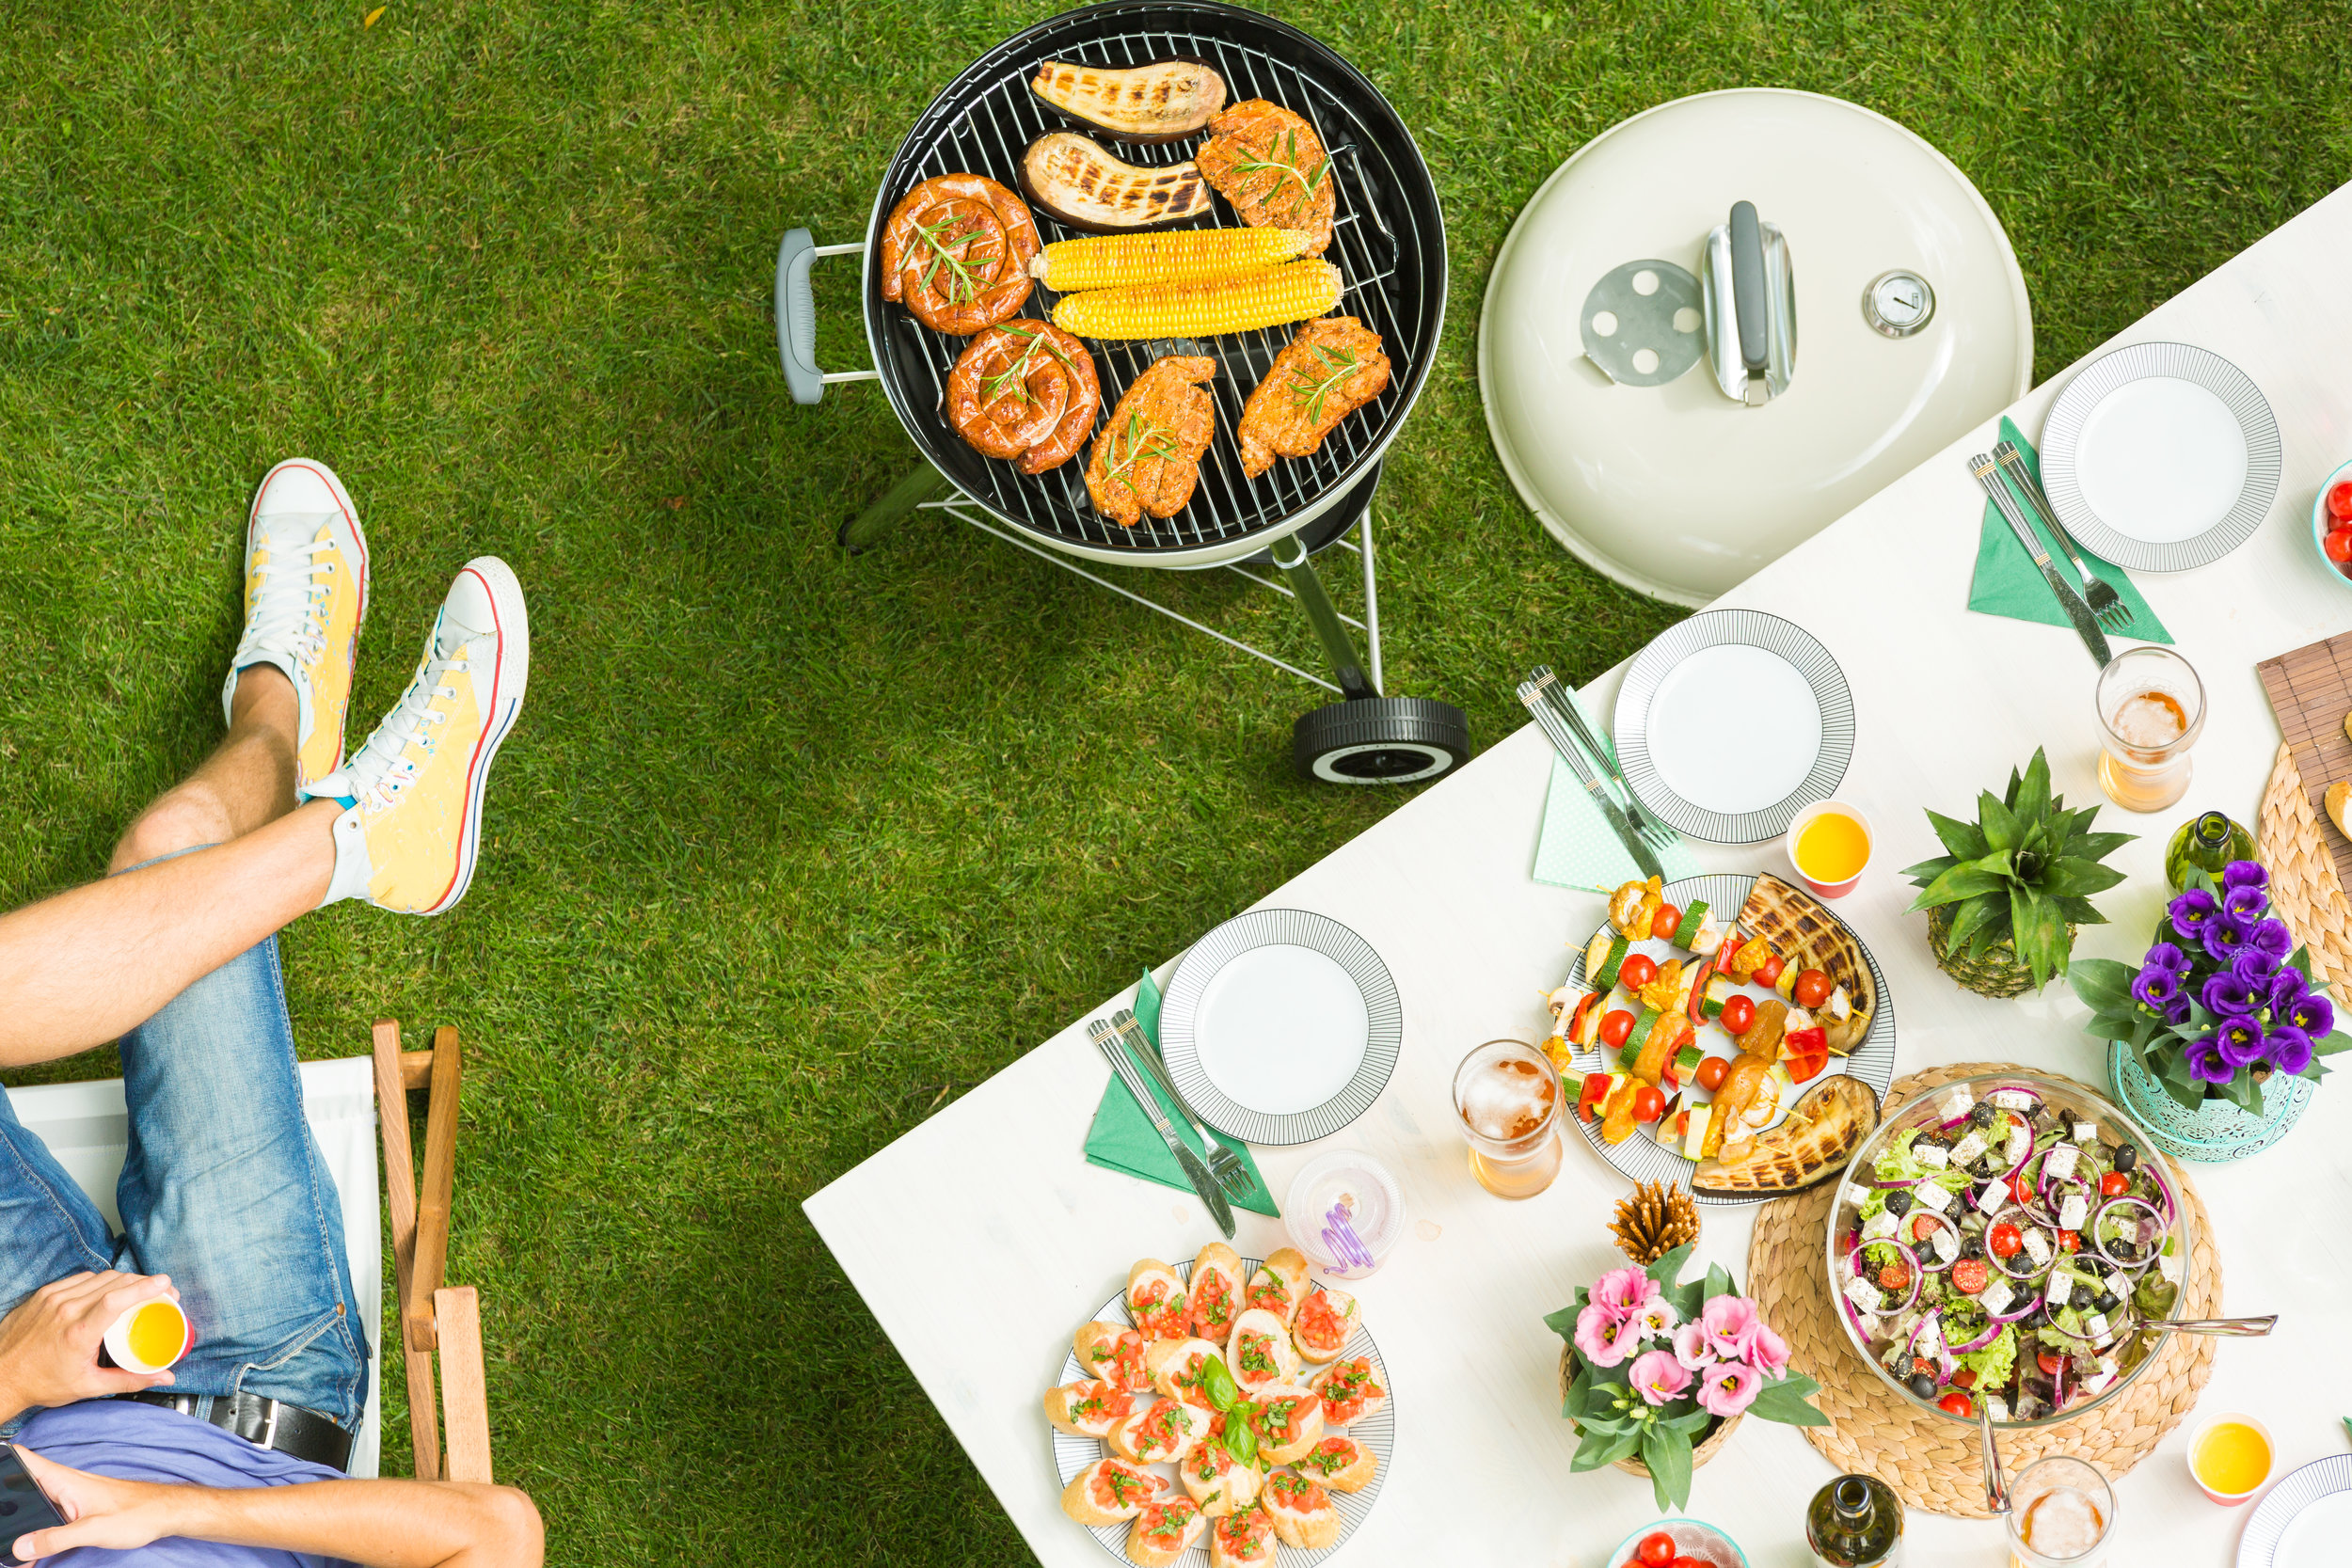 food-and-barbecue-P8D8PJG.jpg